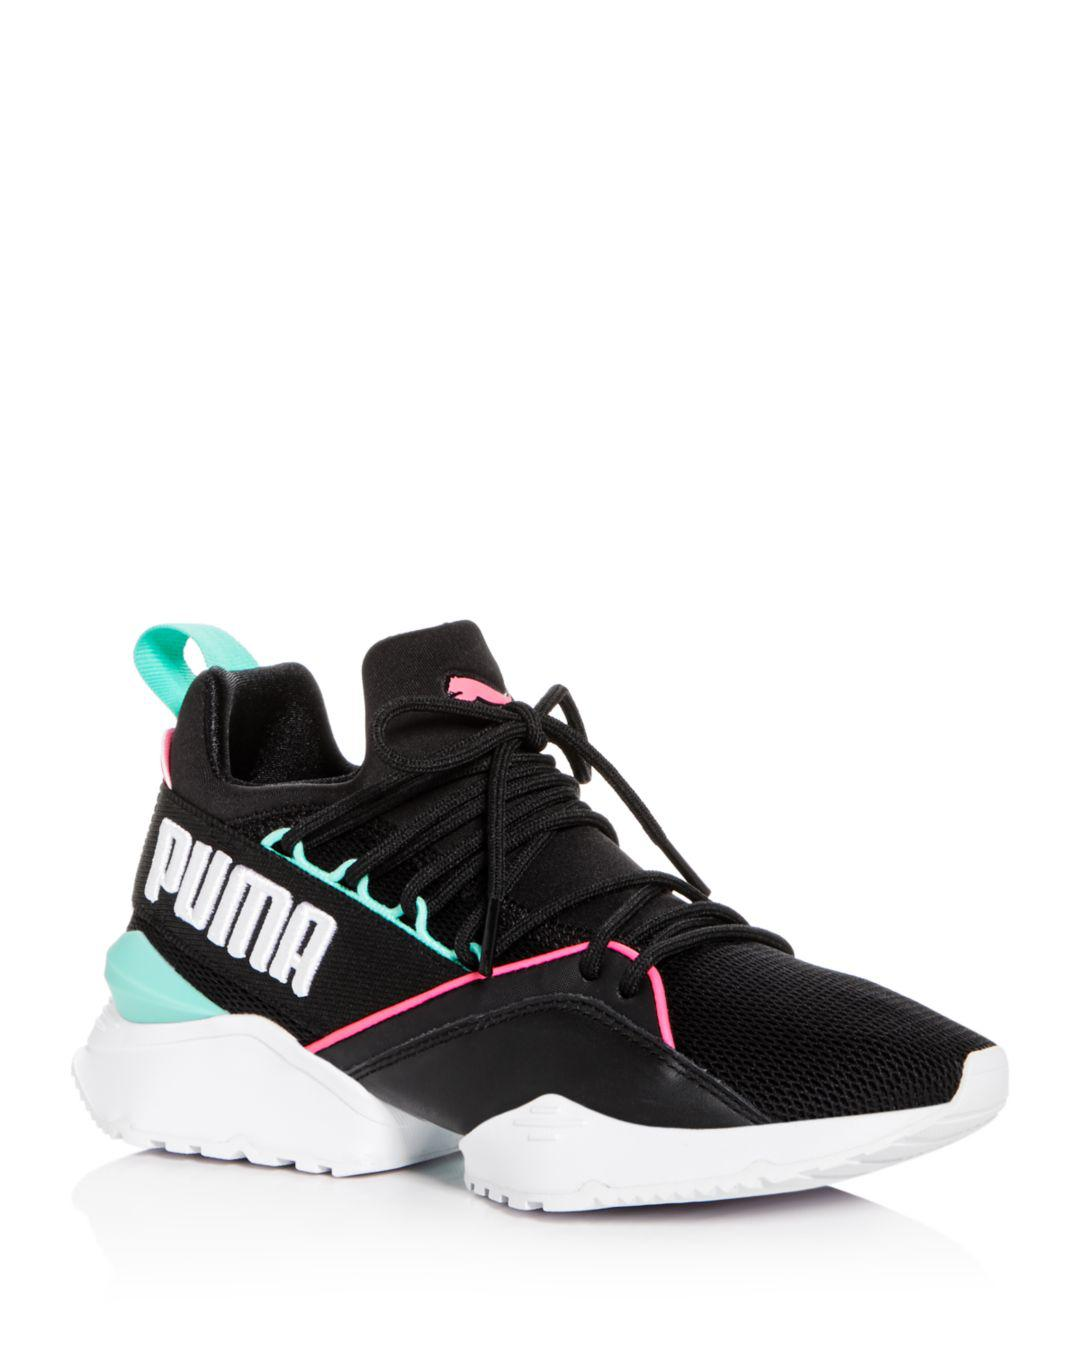 PUMA Women s Muse Maia Street Knit Lace Up Sneakers in Black - Save ... b5656dac6